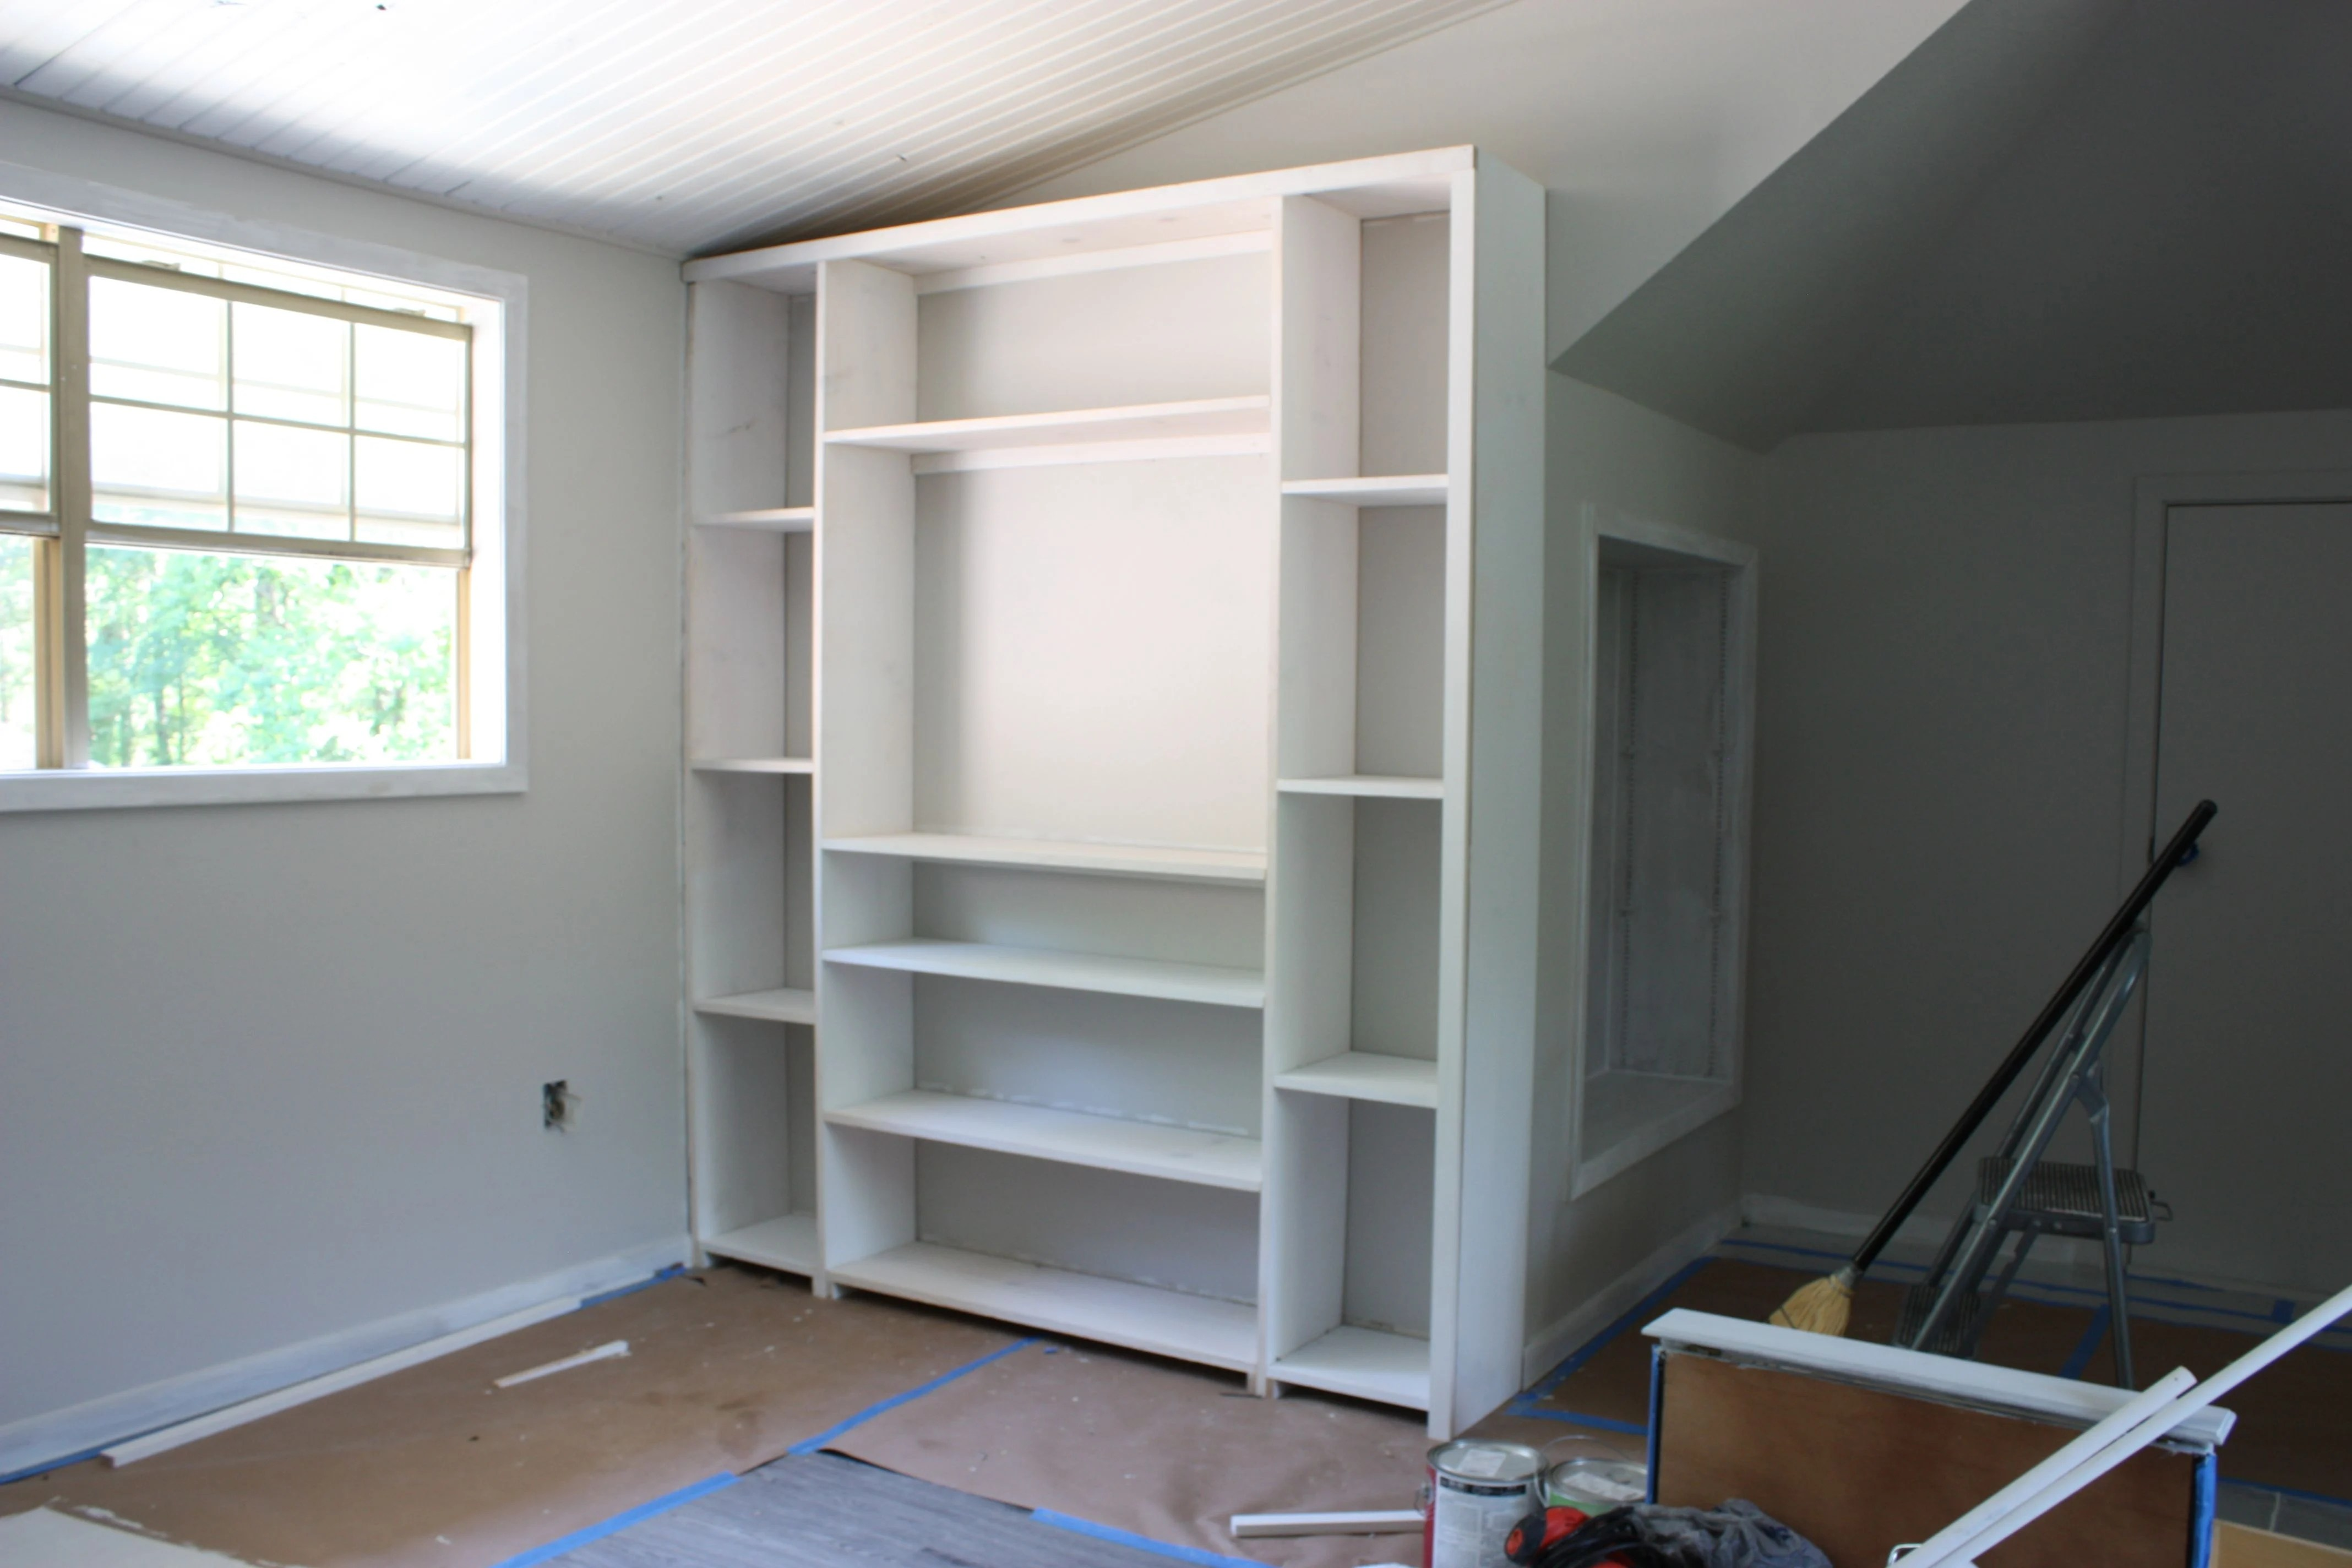 How to build inexpensive built ins using pre made stock cabinets and standard size plywood The Creativity Exchange